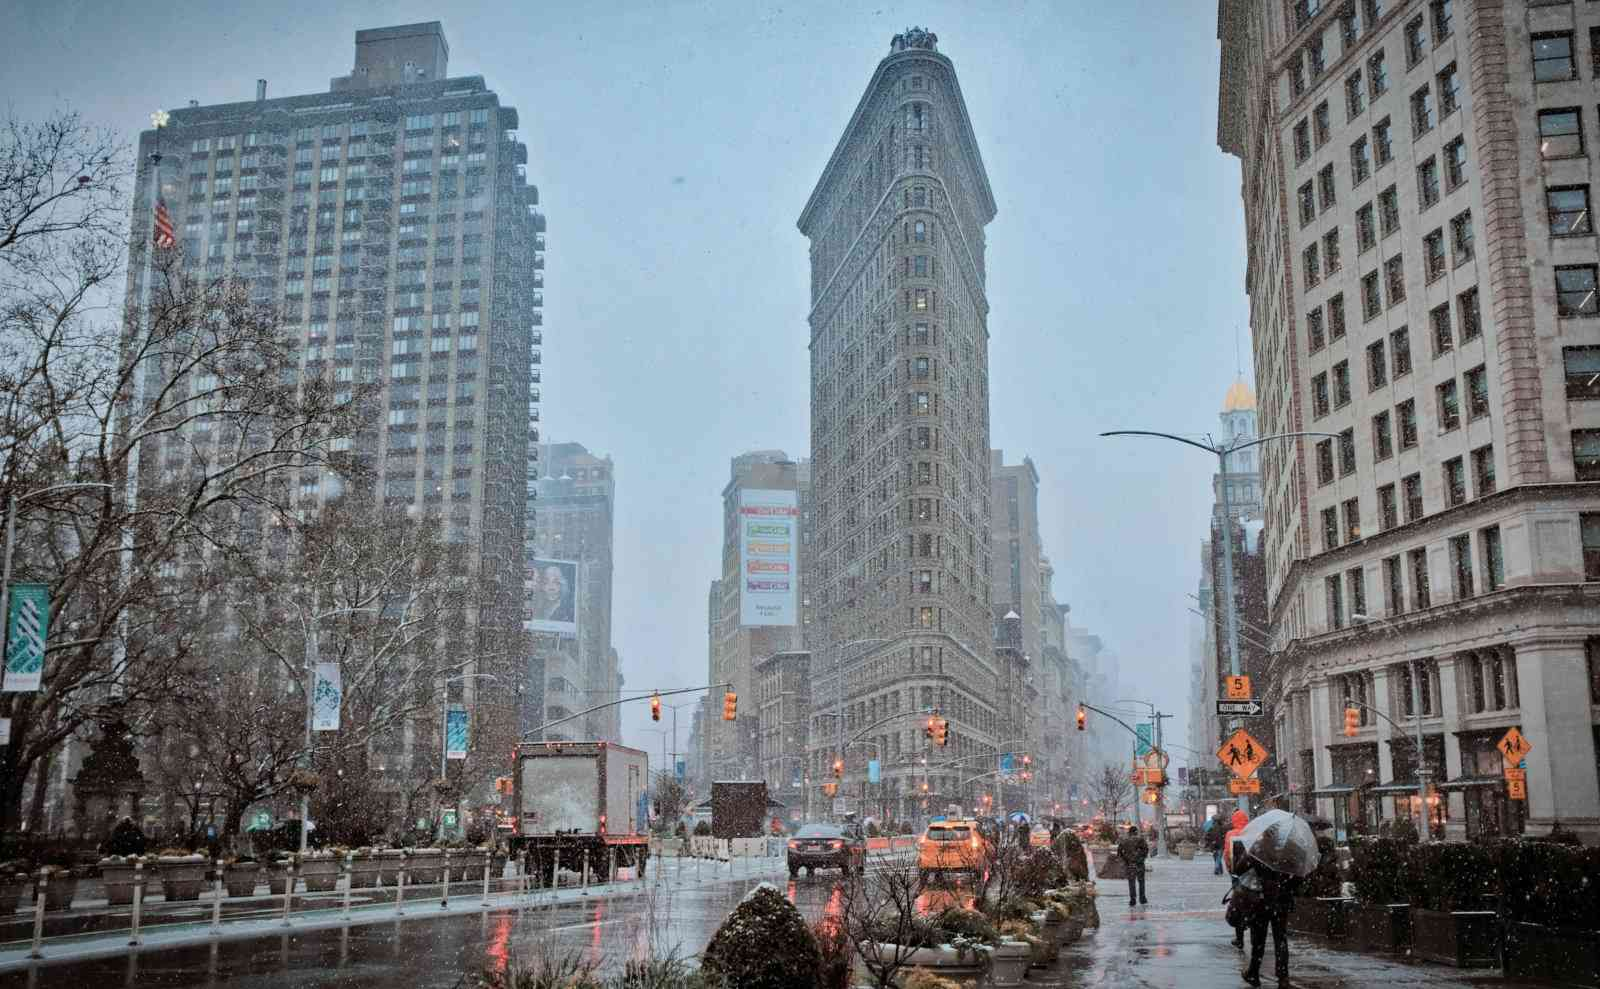 The Flatiron Building in New York City, a location you can see in the video games Tom Clancy's The Division.